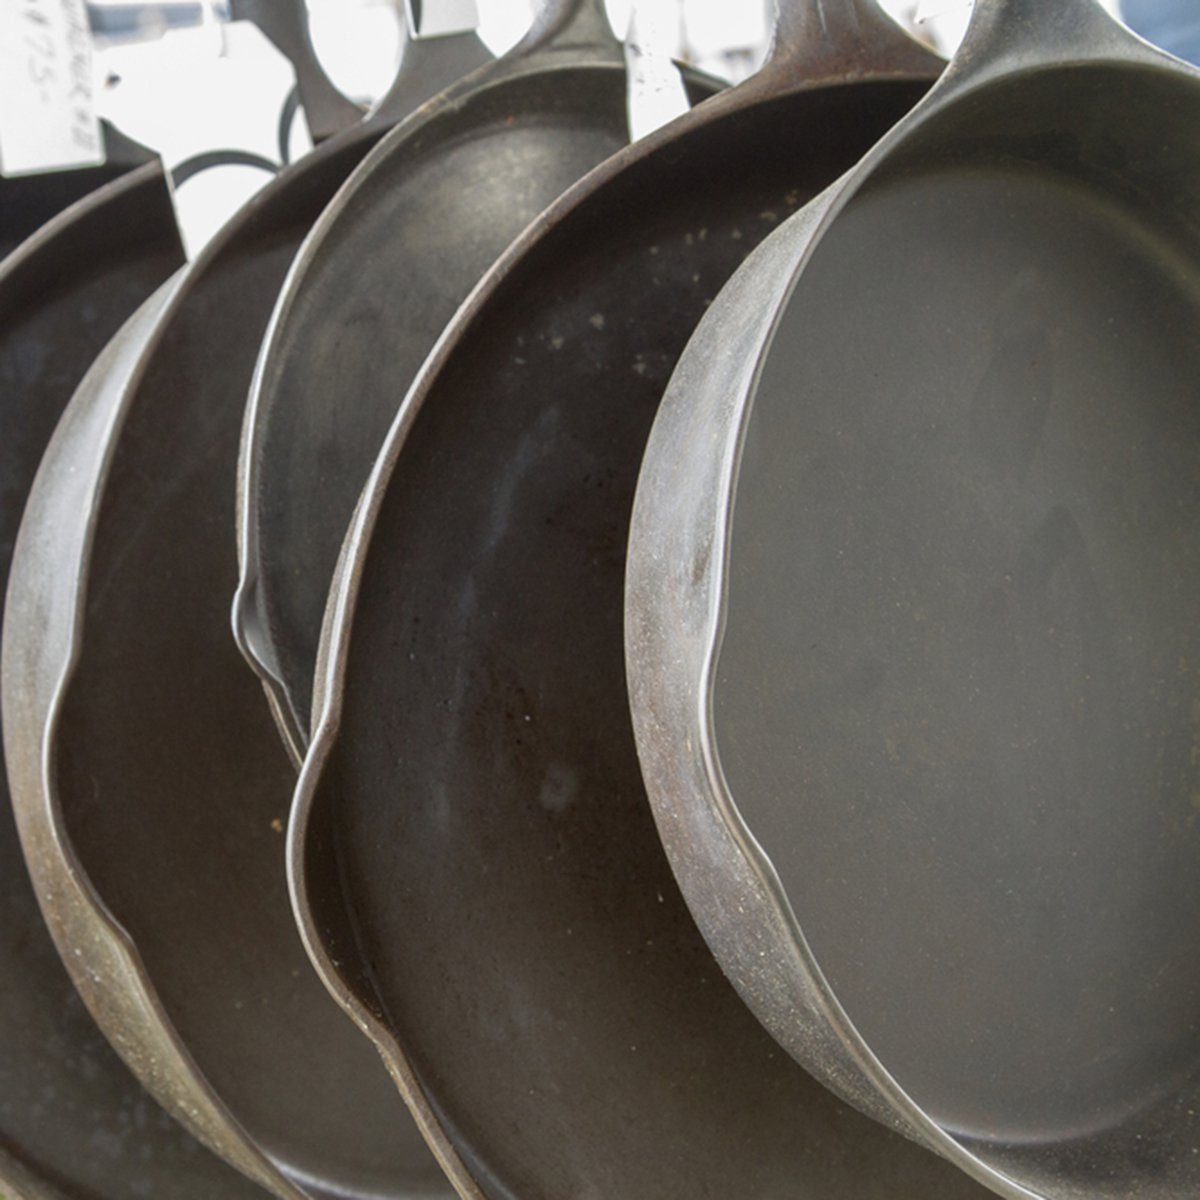 Hanging row of cast iron skillets at swap meet